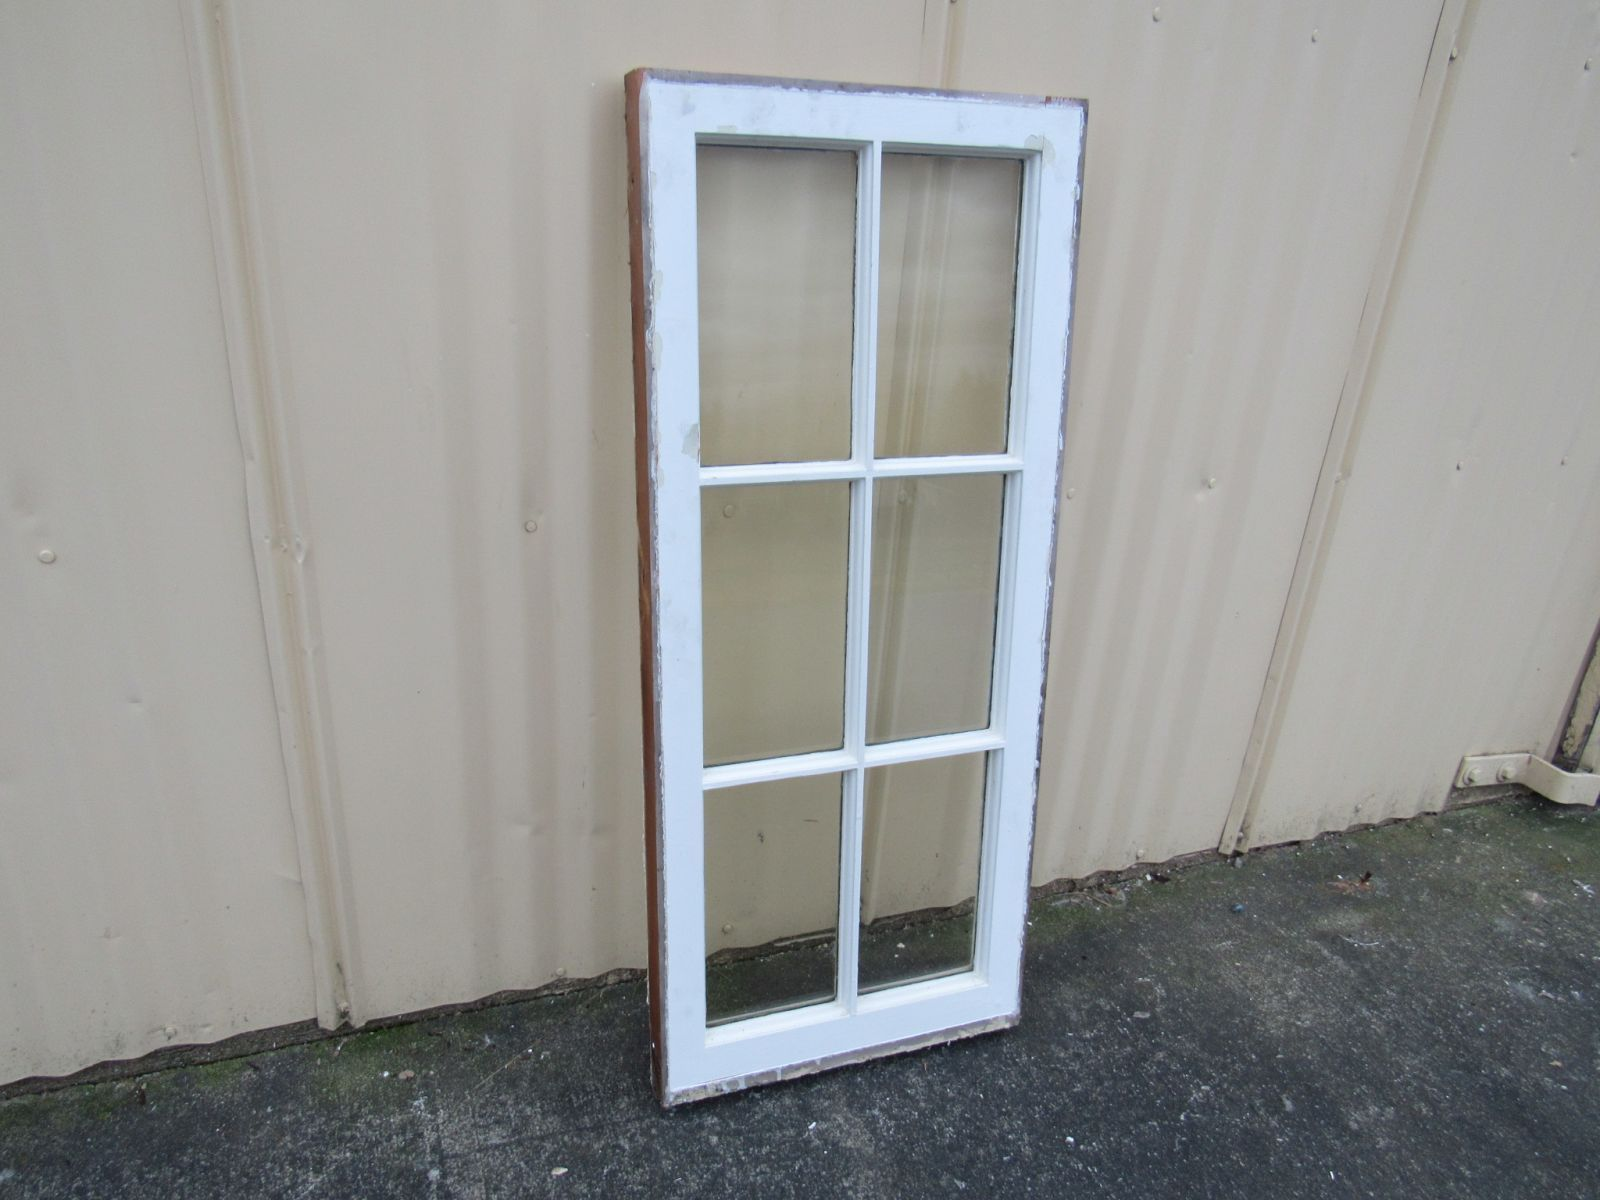 Handcrafted Antique Exterior True Divided Window Type G White 40in x 17in Wood